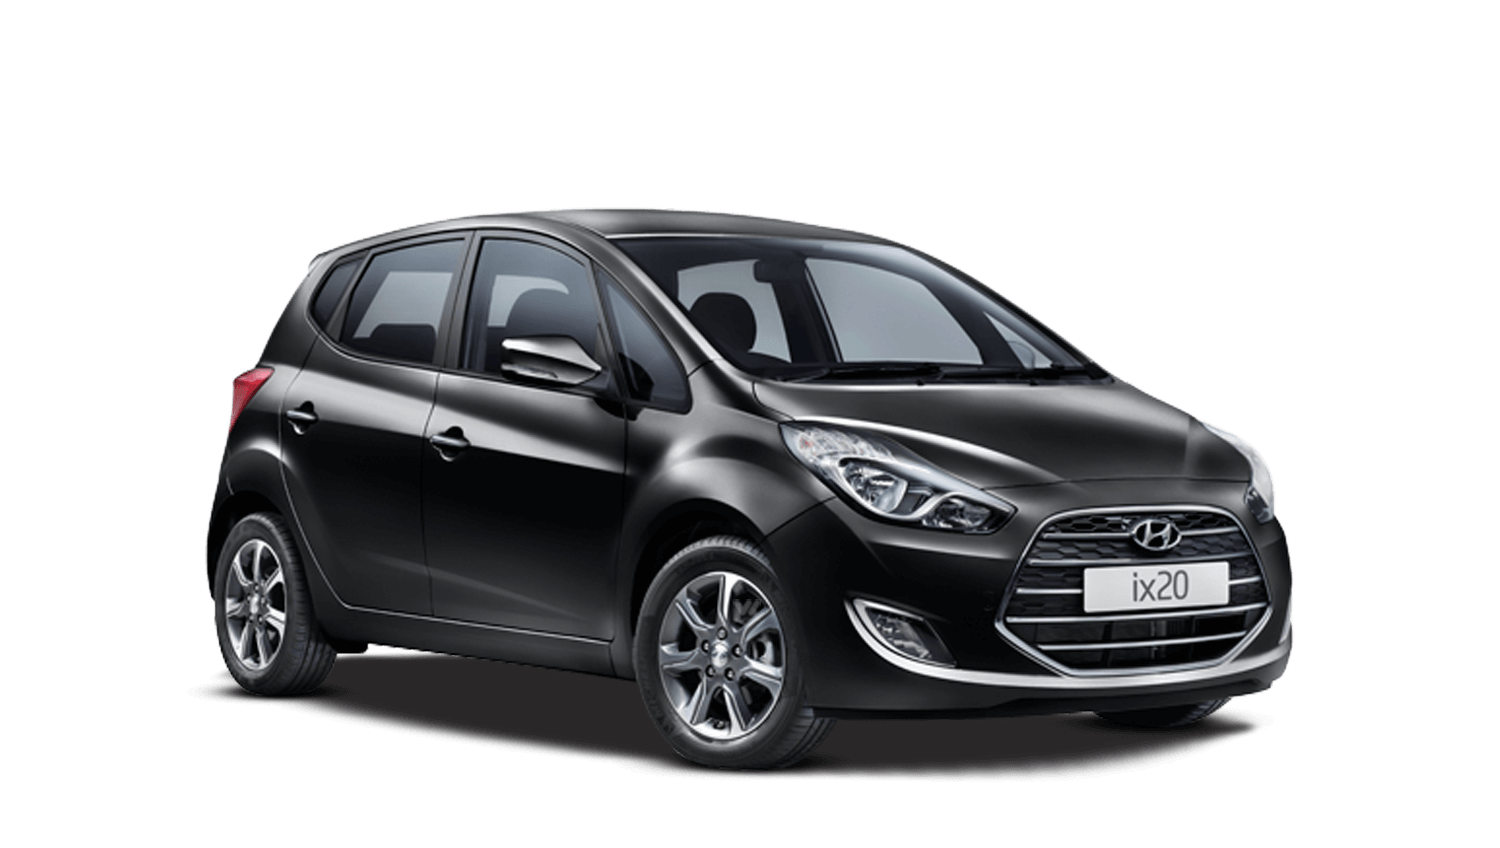 Phantom Black Hyundai ix20